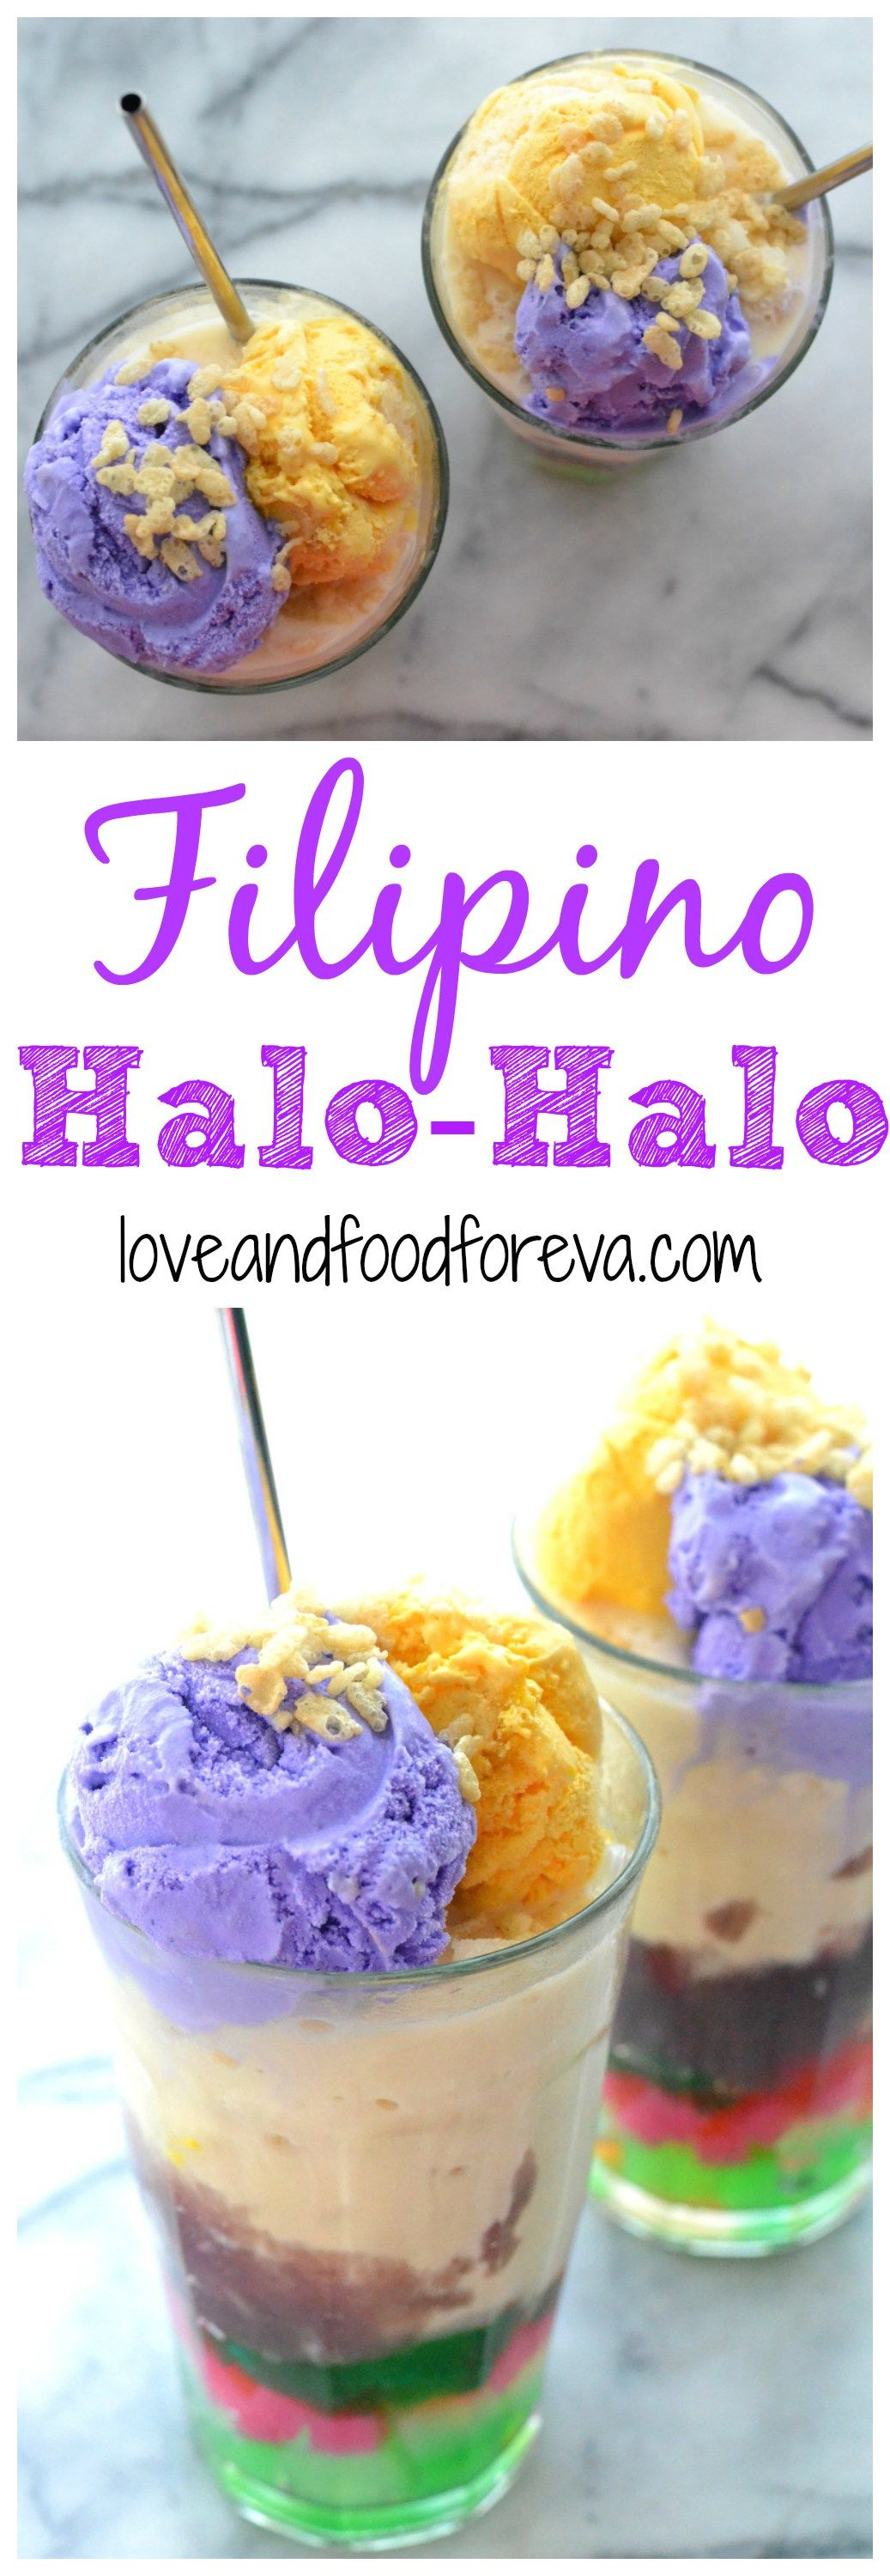 Sweet and satisfying halohalo, a beloved traditional